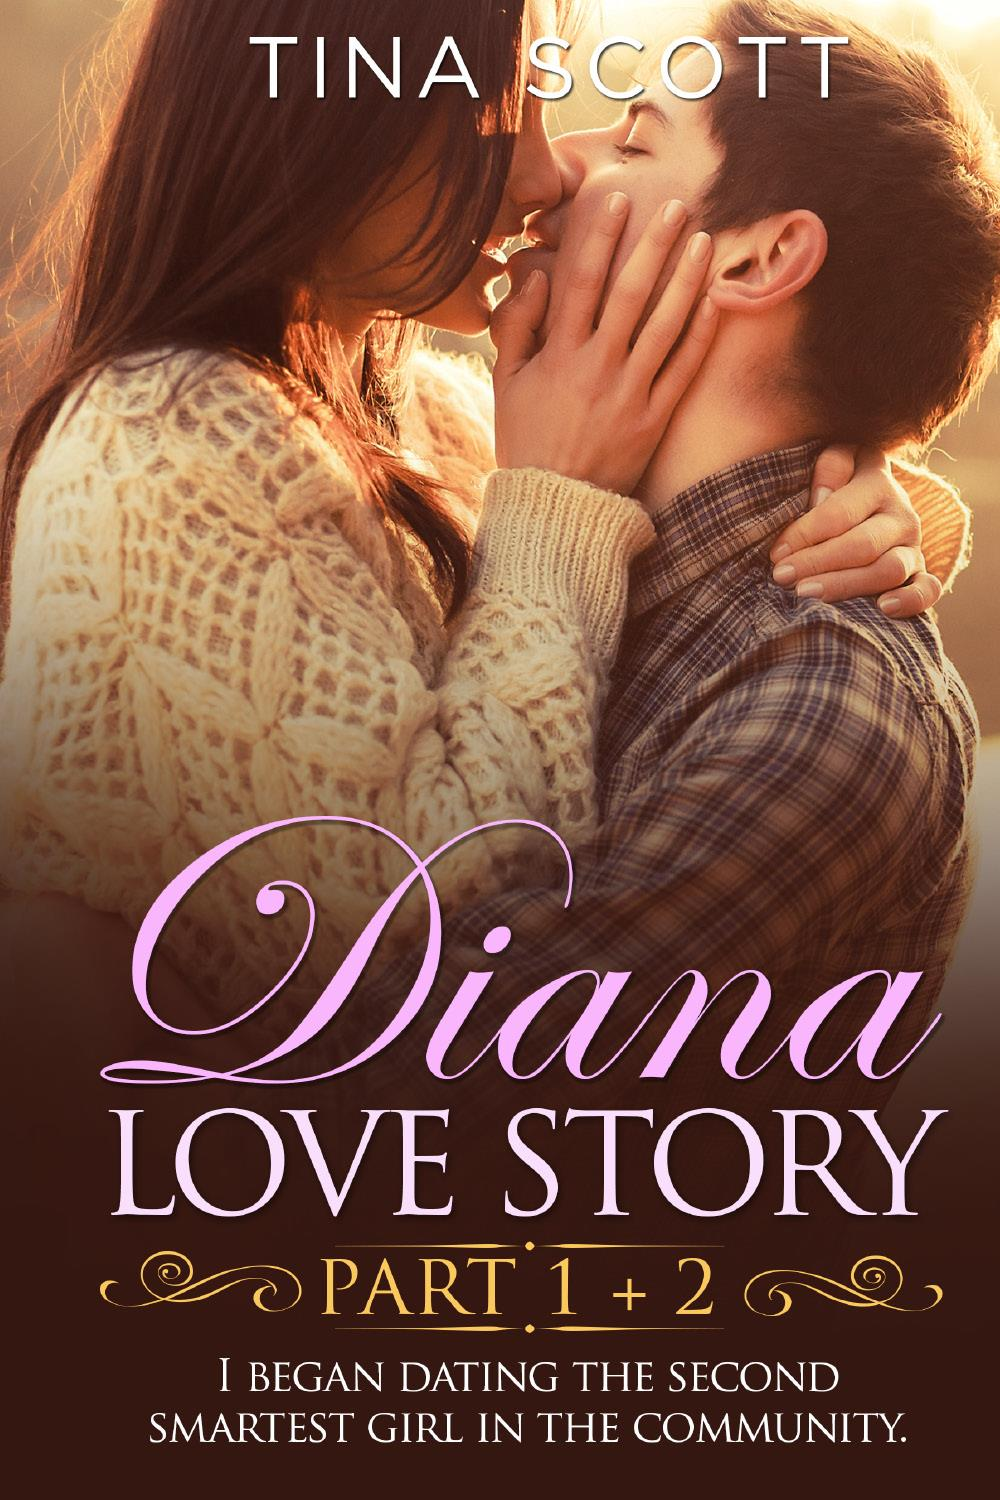 Diana Love Story (PT. 1 + PT.2). I began dating the second smartest girl in the community.